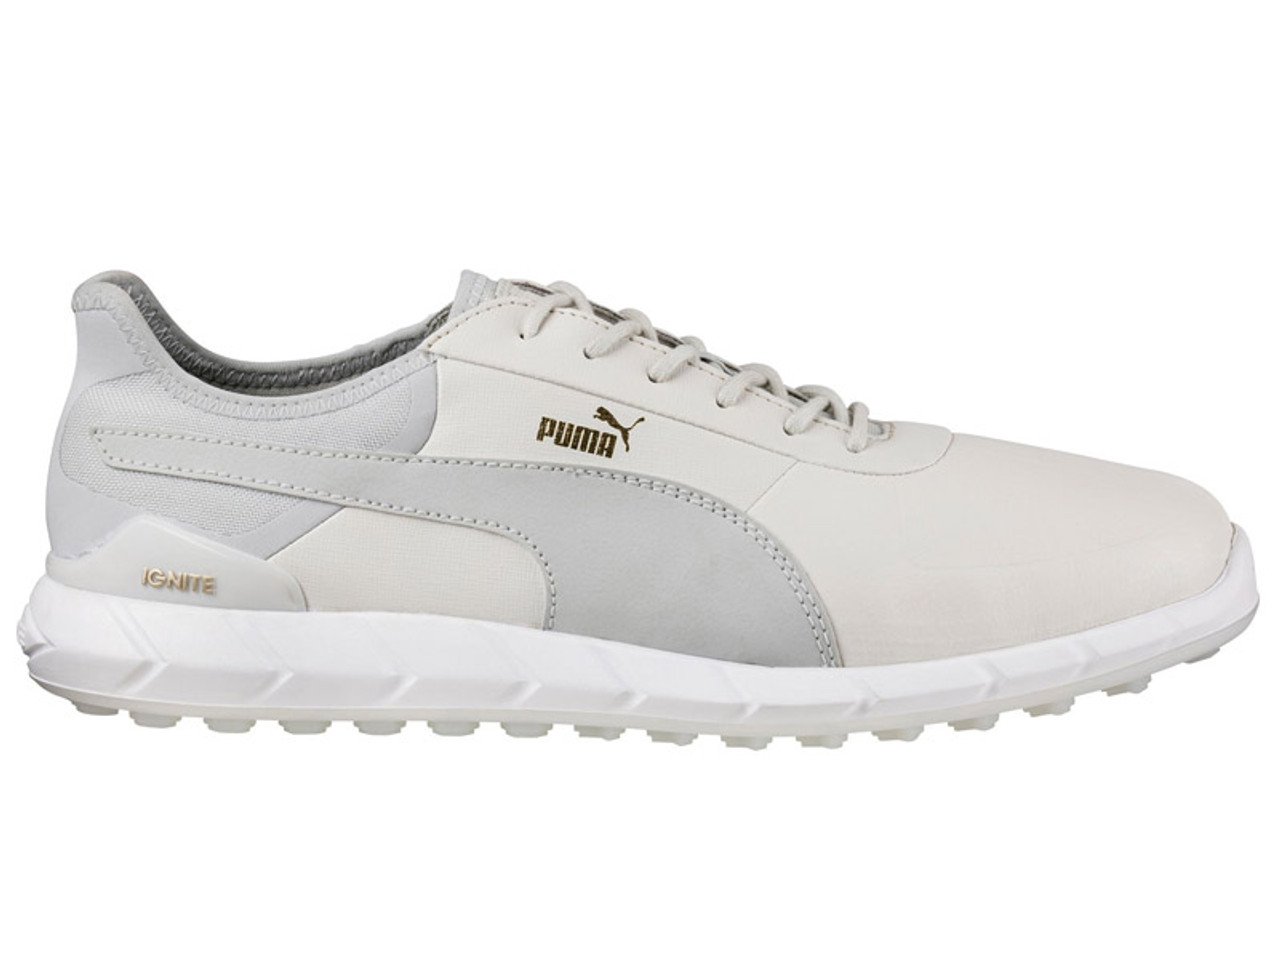 Puma Ignite Spikeless Lux Golf Shoes WhiteVaporous Grey